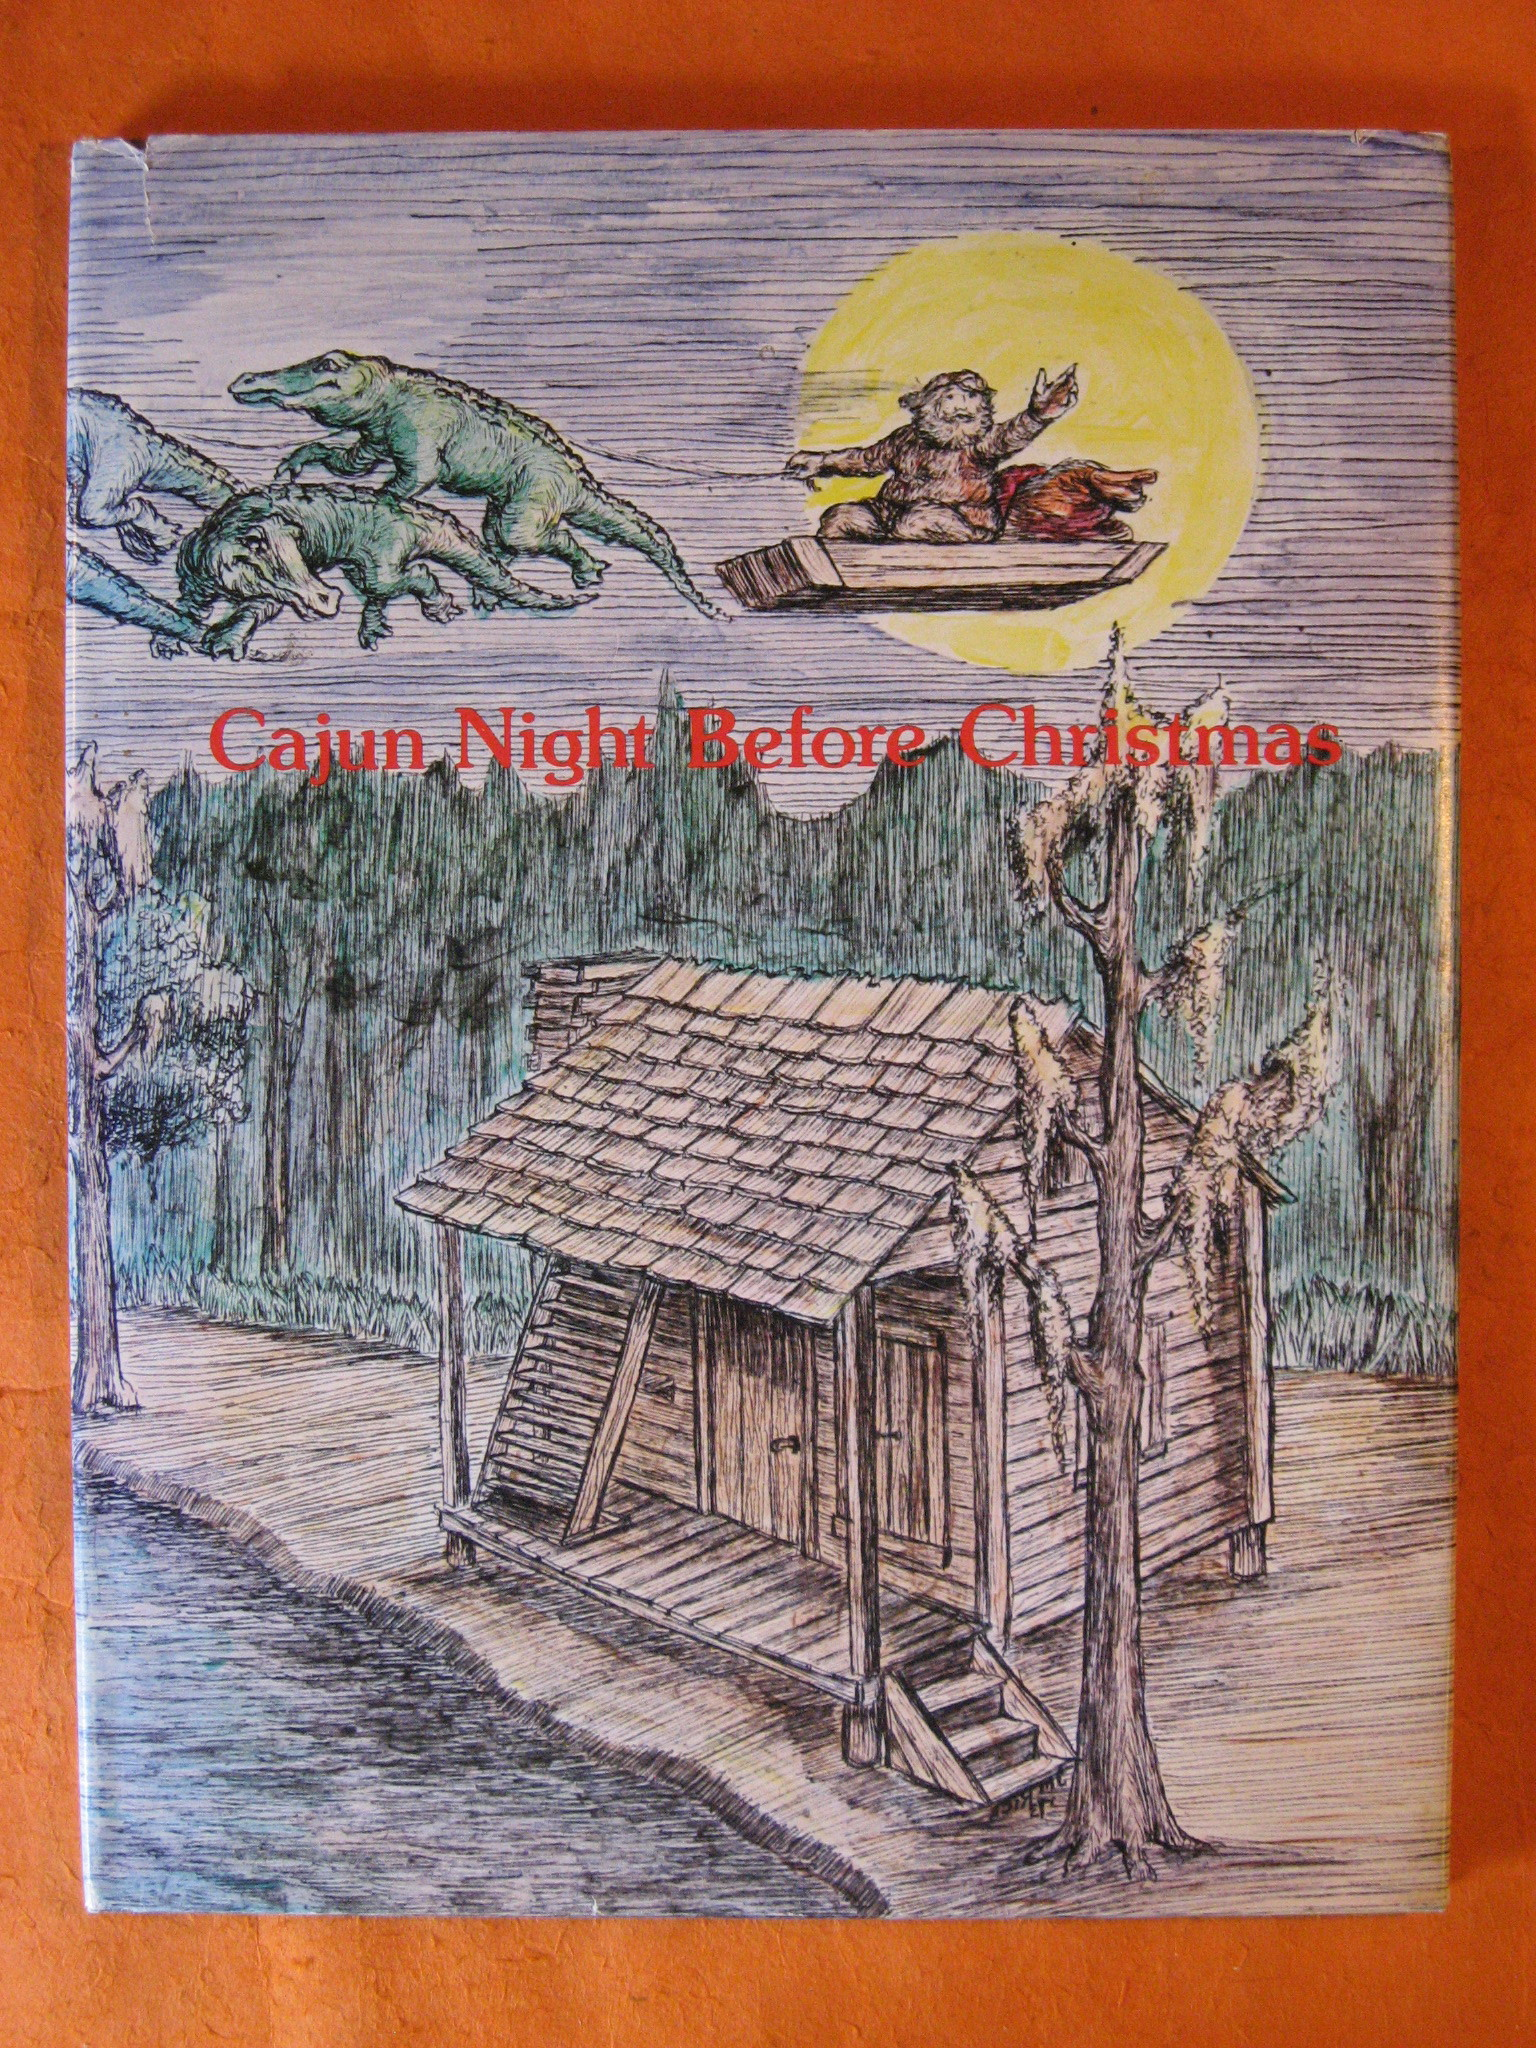 Cajun Night Before Christmas, Trosclair; Jacobs, Howard (editor)